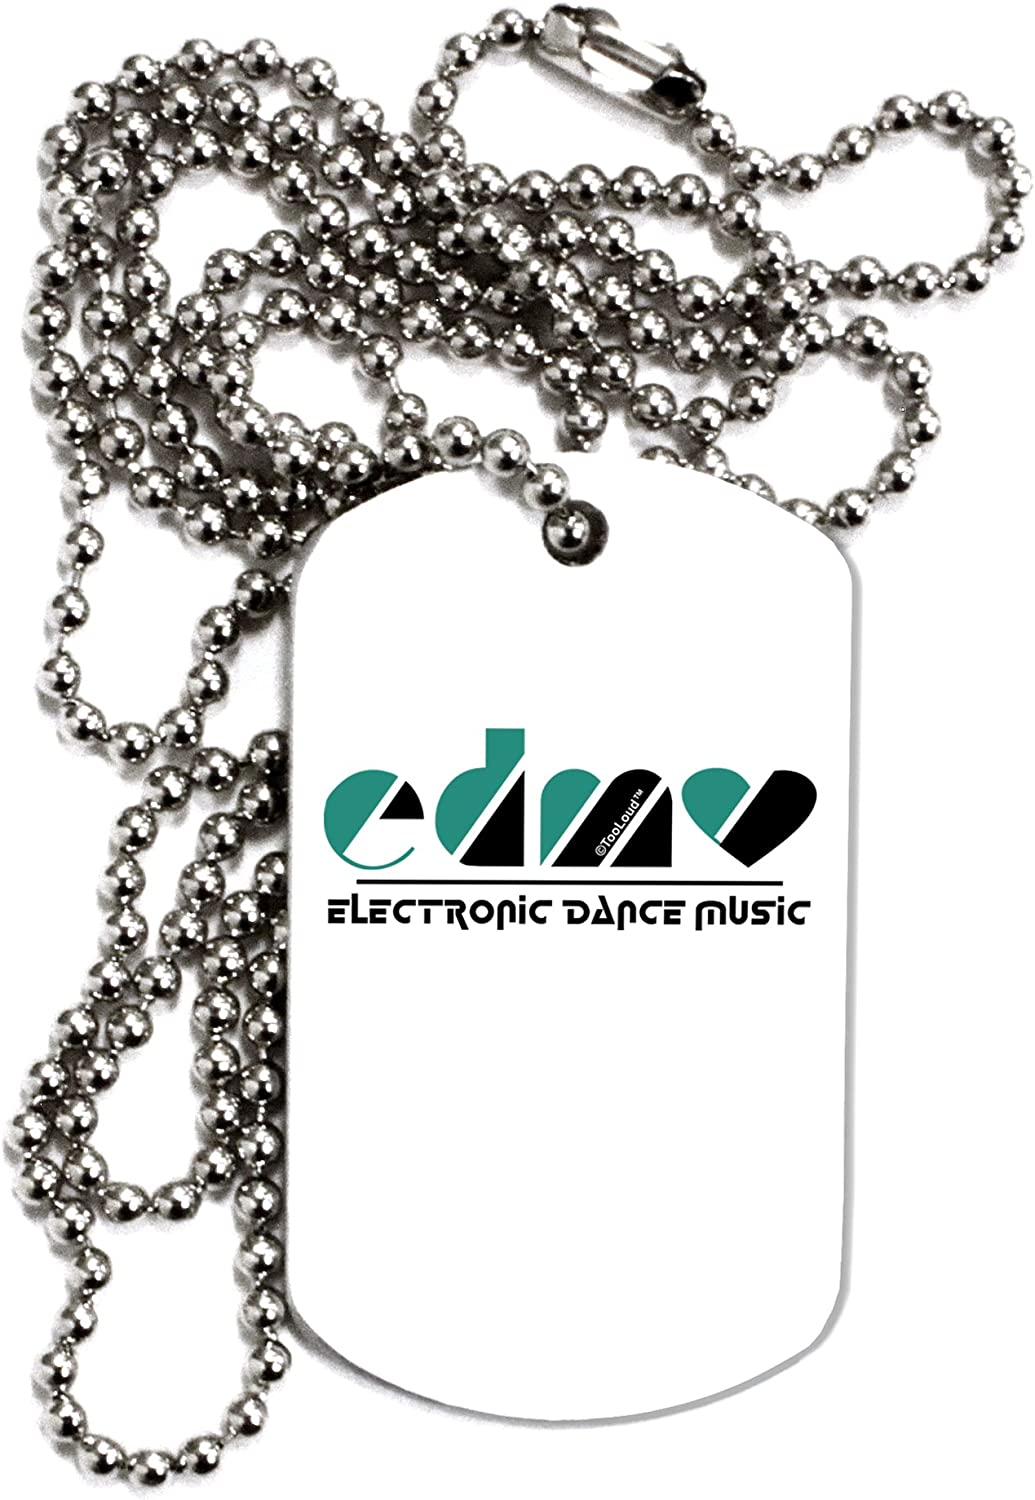 TOOLOUD EDM Heart Black Adult Dog Tag Chain Necklace